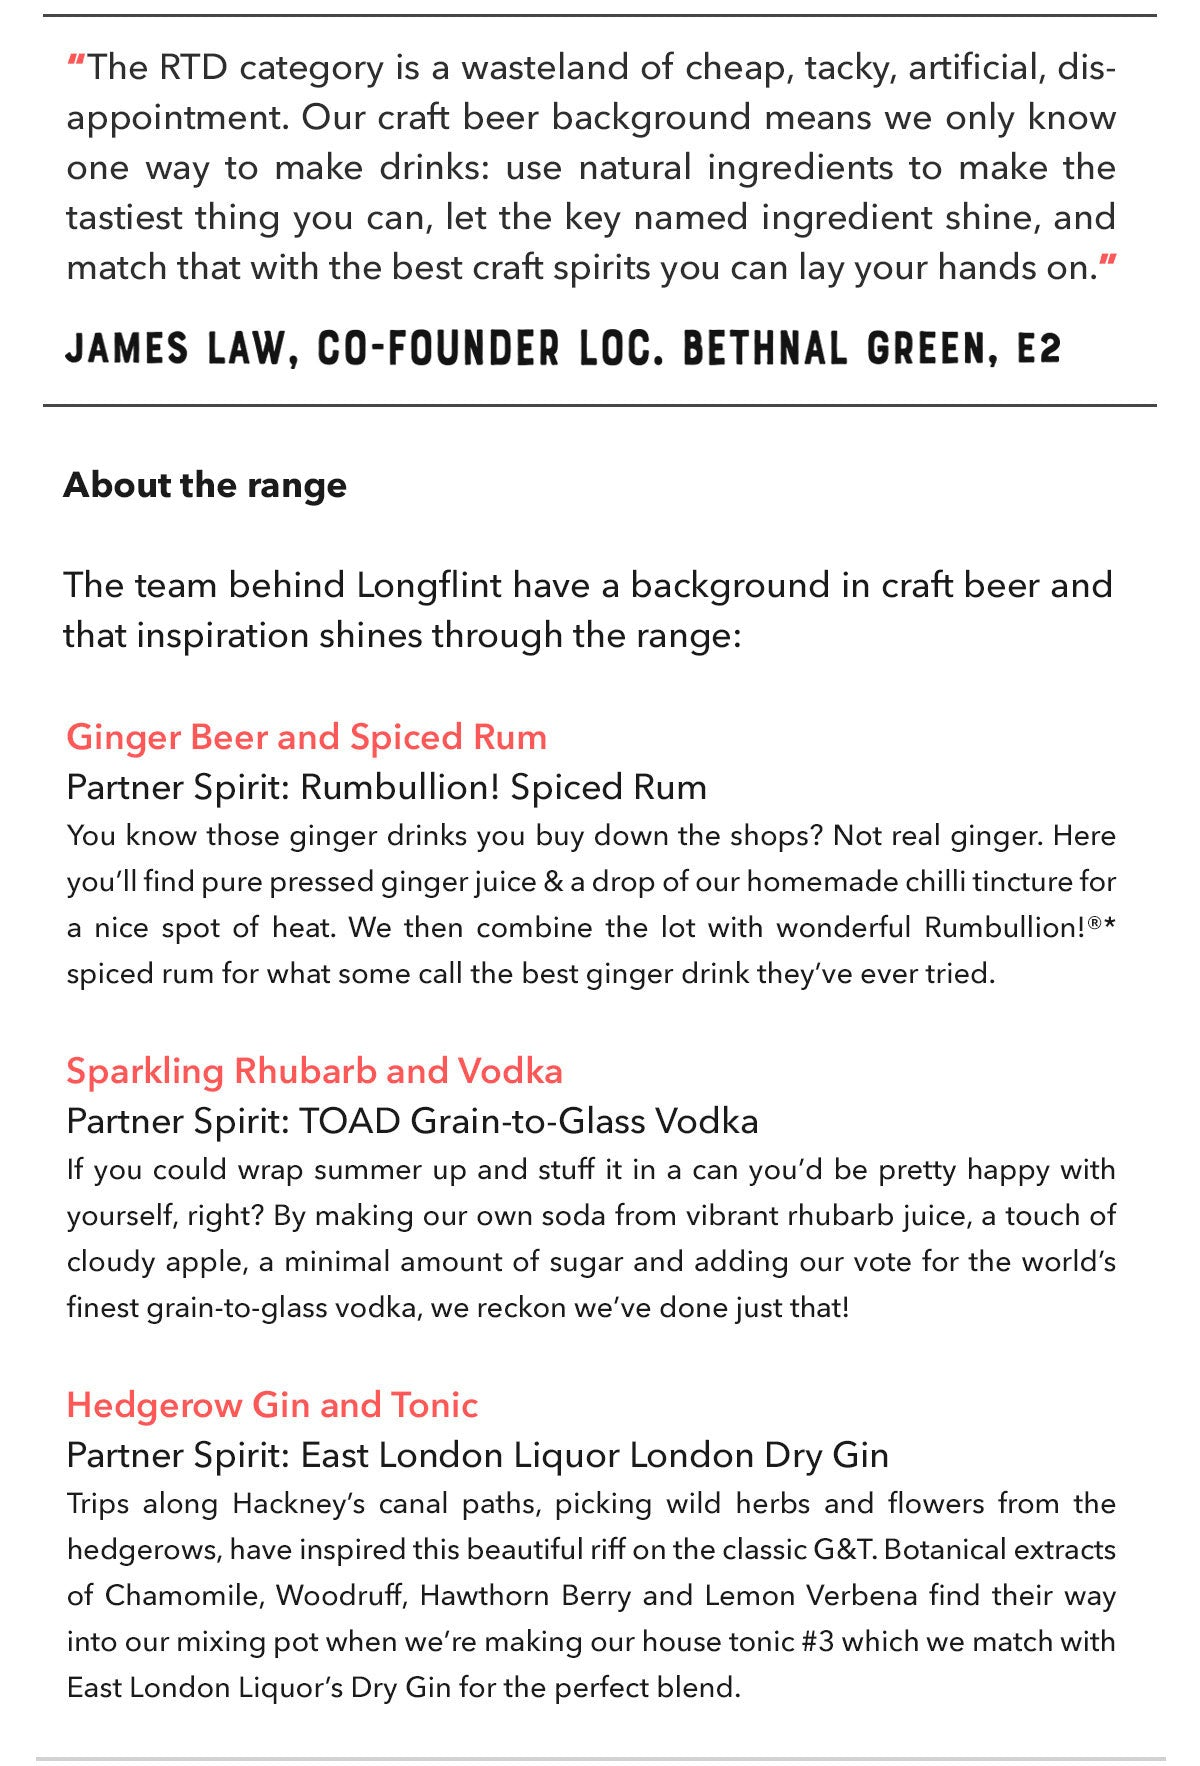 """The RTD category is a wasteland of cheap, tacky, artificial, disappointment. Our craft beer background means we only know one way to make drinks: use natural ingredients to make the tastiest thing you can, let the key named ingredient shine, and match that with the best craft spirits you can lay your hands on.""<br /><strong>James Law, Co-Founder Longflint Drinks Co.</strong><br /><br /><br /><strong>About the range</strong><br /><br />The team behind Longflint have a background in craft beer and that inspiration shines through the range:<br /> <br /><strong>Ginger Beer and Spiced Rum</strong><br />Partner Spirit: Rumbullion! Spiced Rum<br />You know those ginger drinks you buy down the shops? Not real ginger. Here you'll find pure pressed ginger juice &amp; a drop of our homemade chilli tincture for a nice spot of heat. We then combine the lot with wonderful Rumbullion!®* spiced rum for what some call the best ginger drink they've ever tried. <br /><br /><strong>Sparkling Rhubarb and Vodka</strong><br />Partner Spirit: TOAD Grain-to-Glass Vodka<br />If you could wrap summer up and stuff it in a can you'd be pretty happy with yourself, right? By making our own soda from vibrant rhubarb juice, a touch of cloudy apple, a minimal amount of sugar and adding our vote for the world's finest grain-to-glass vodka, we reckon we've done just that!<br /><br /><strong>Hedgerow Gin and Tonic</strong><br />Partner Spirit: East London Liquor London Dry Gin<br />Trips along Hackney's canal paths, picking wild herbs and flowers from the hedgerows, have inspired this beautiful riff on the classic G&amp;T. Botanical extracts of Chamomile, Woodruff, Hawthorn Berry and Lemon Verbena find their way into our mixing pot when we're making our house tonic #3 which we match with East London Liquor's Dry Gin for the perfect blend."